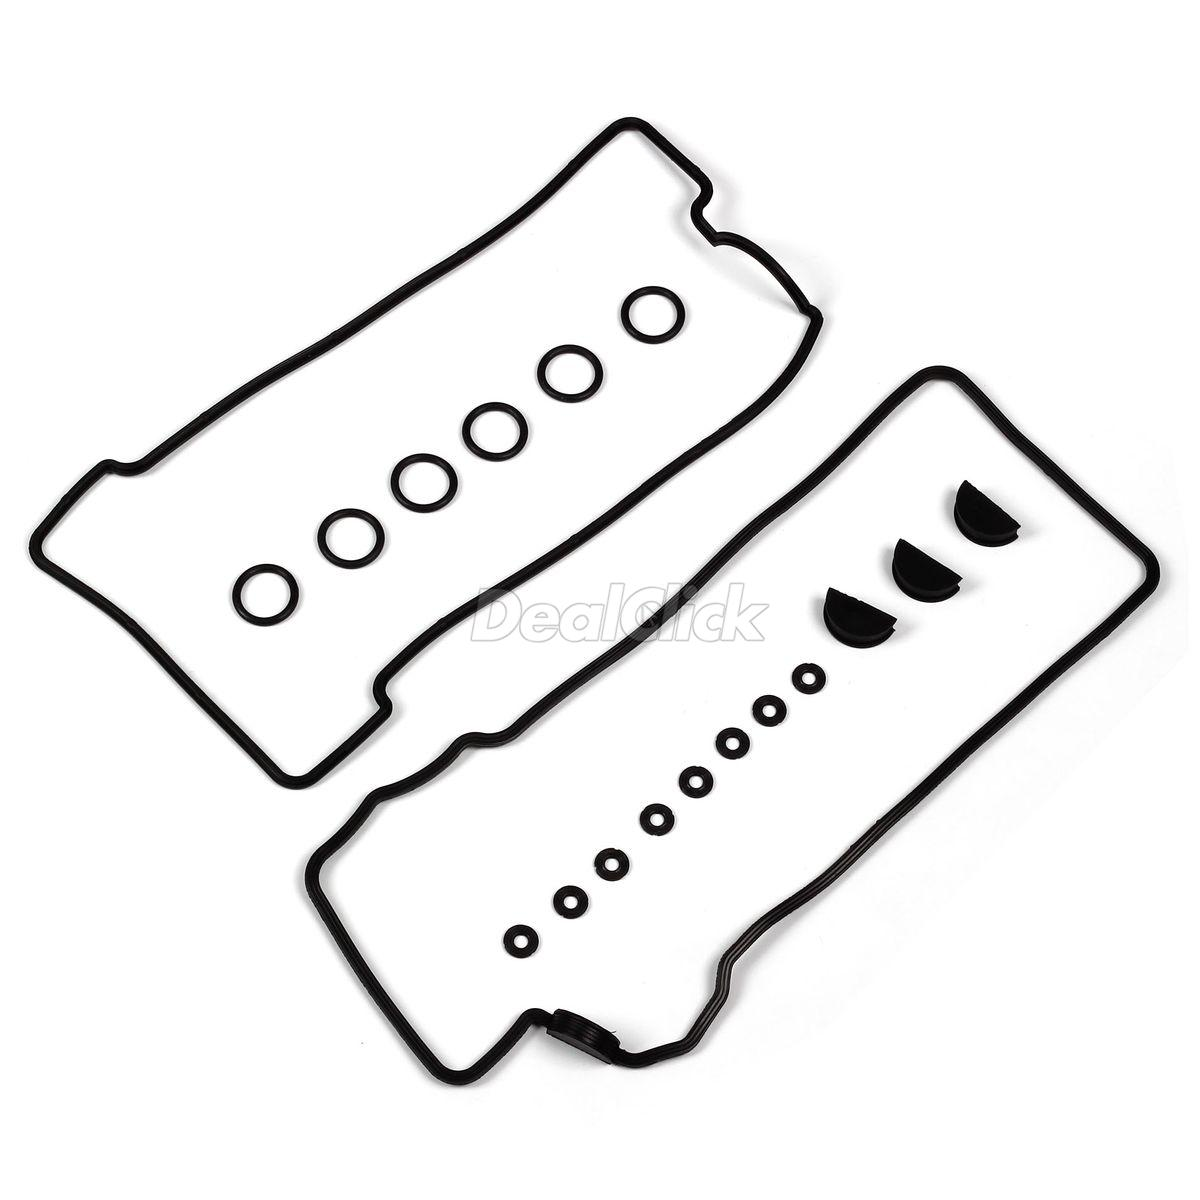 Valve Cover Gasket For Chevy Tracker For Suzuki Xl 7 2 5l